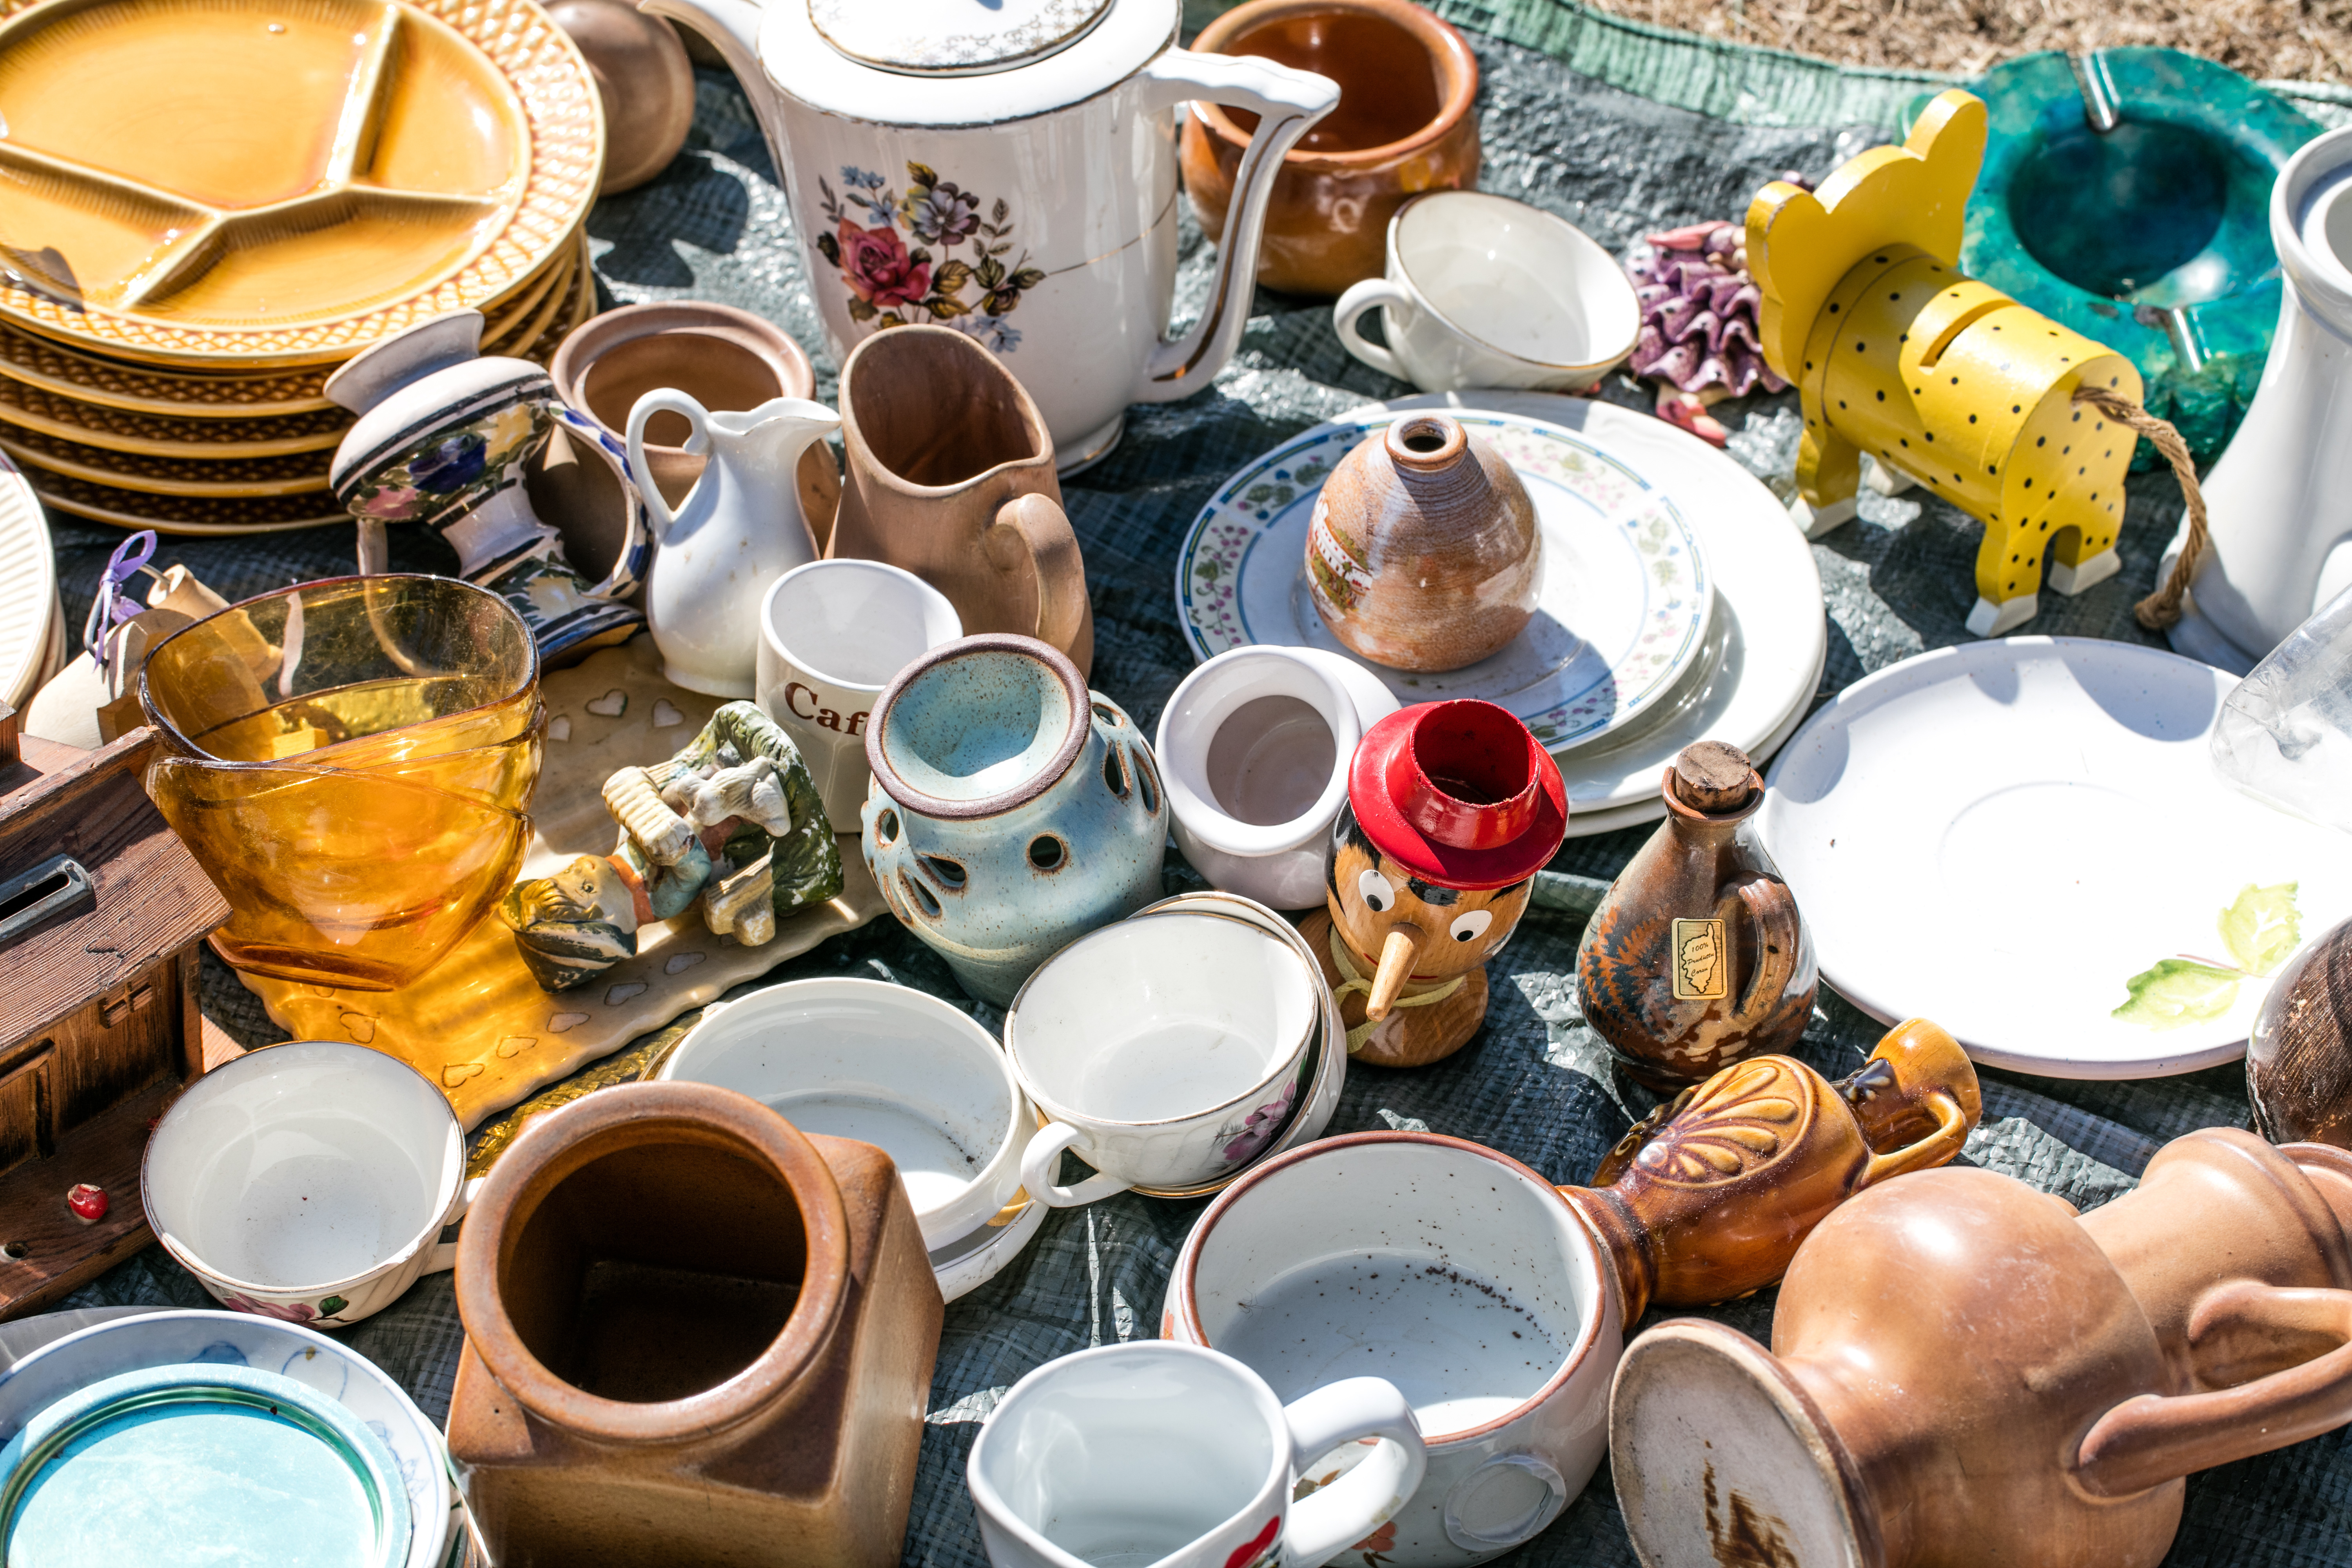 A table full of items like dishware, vases, and cups.